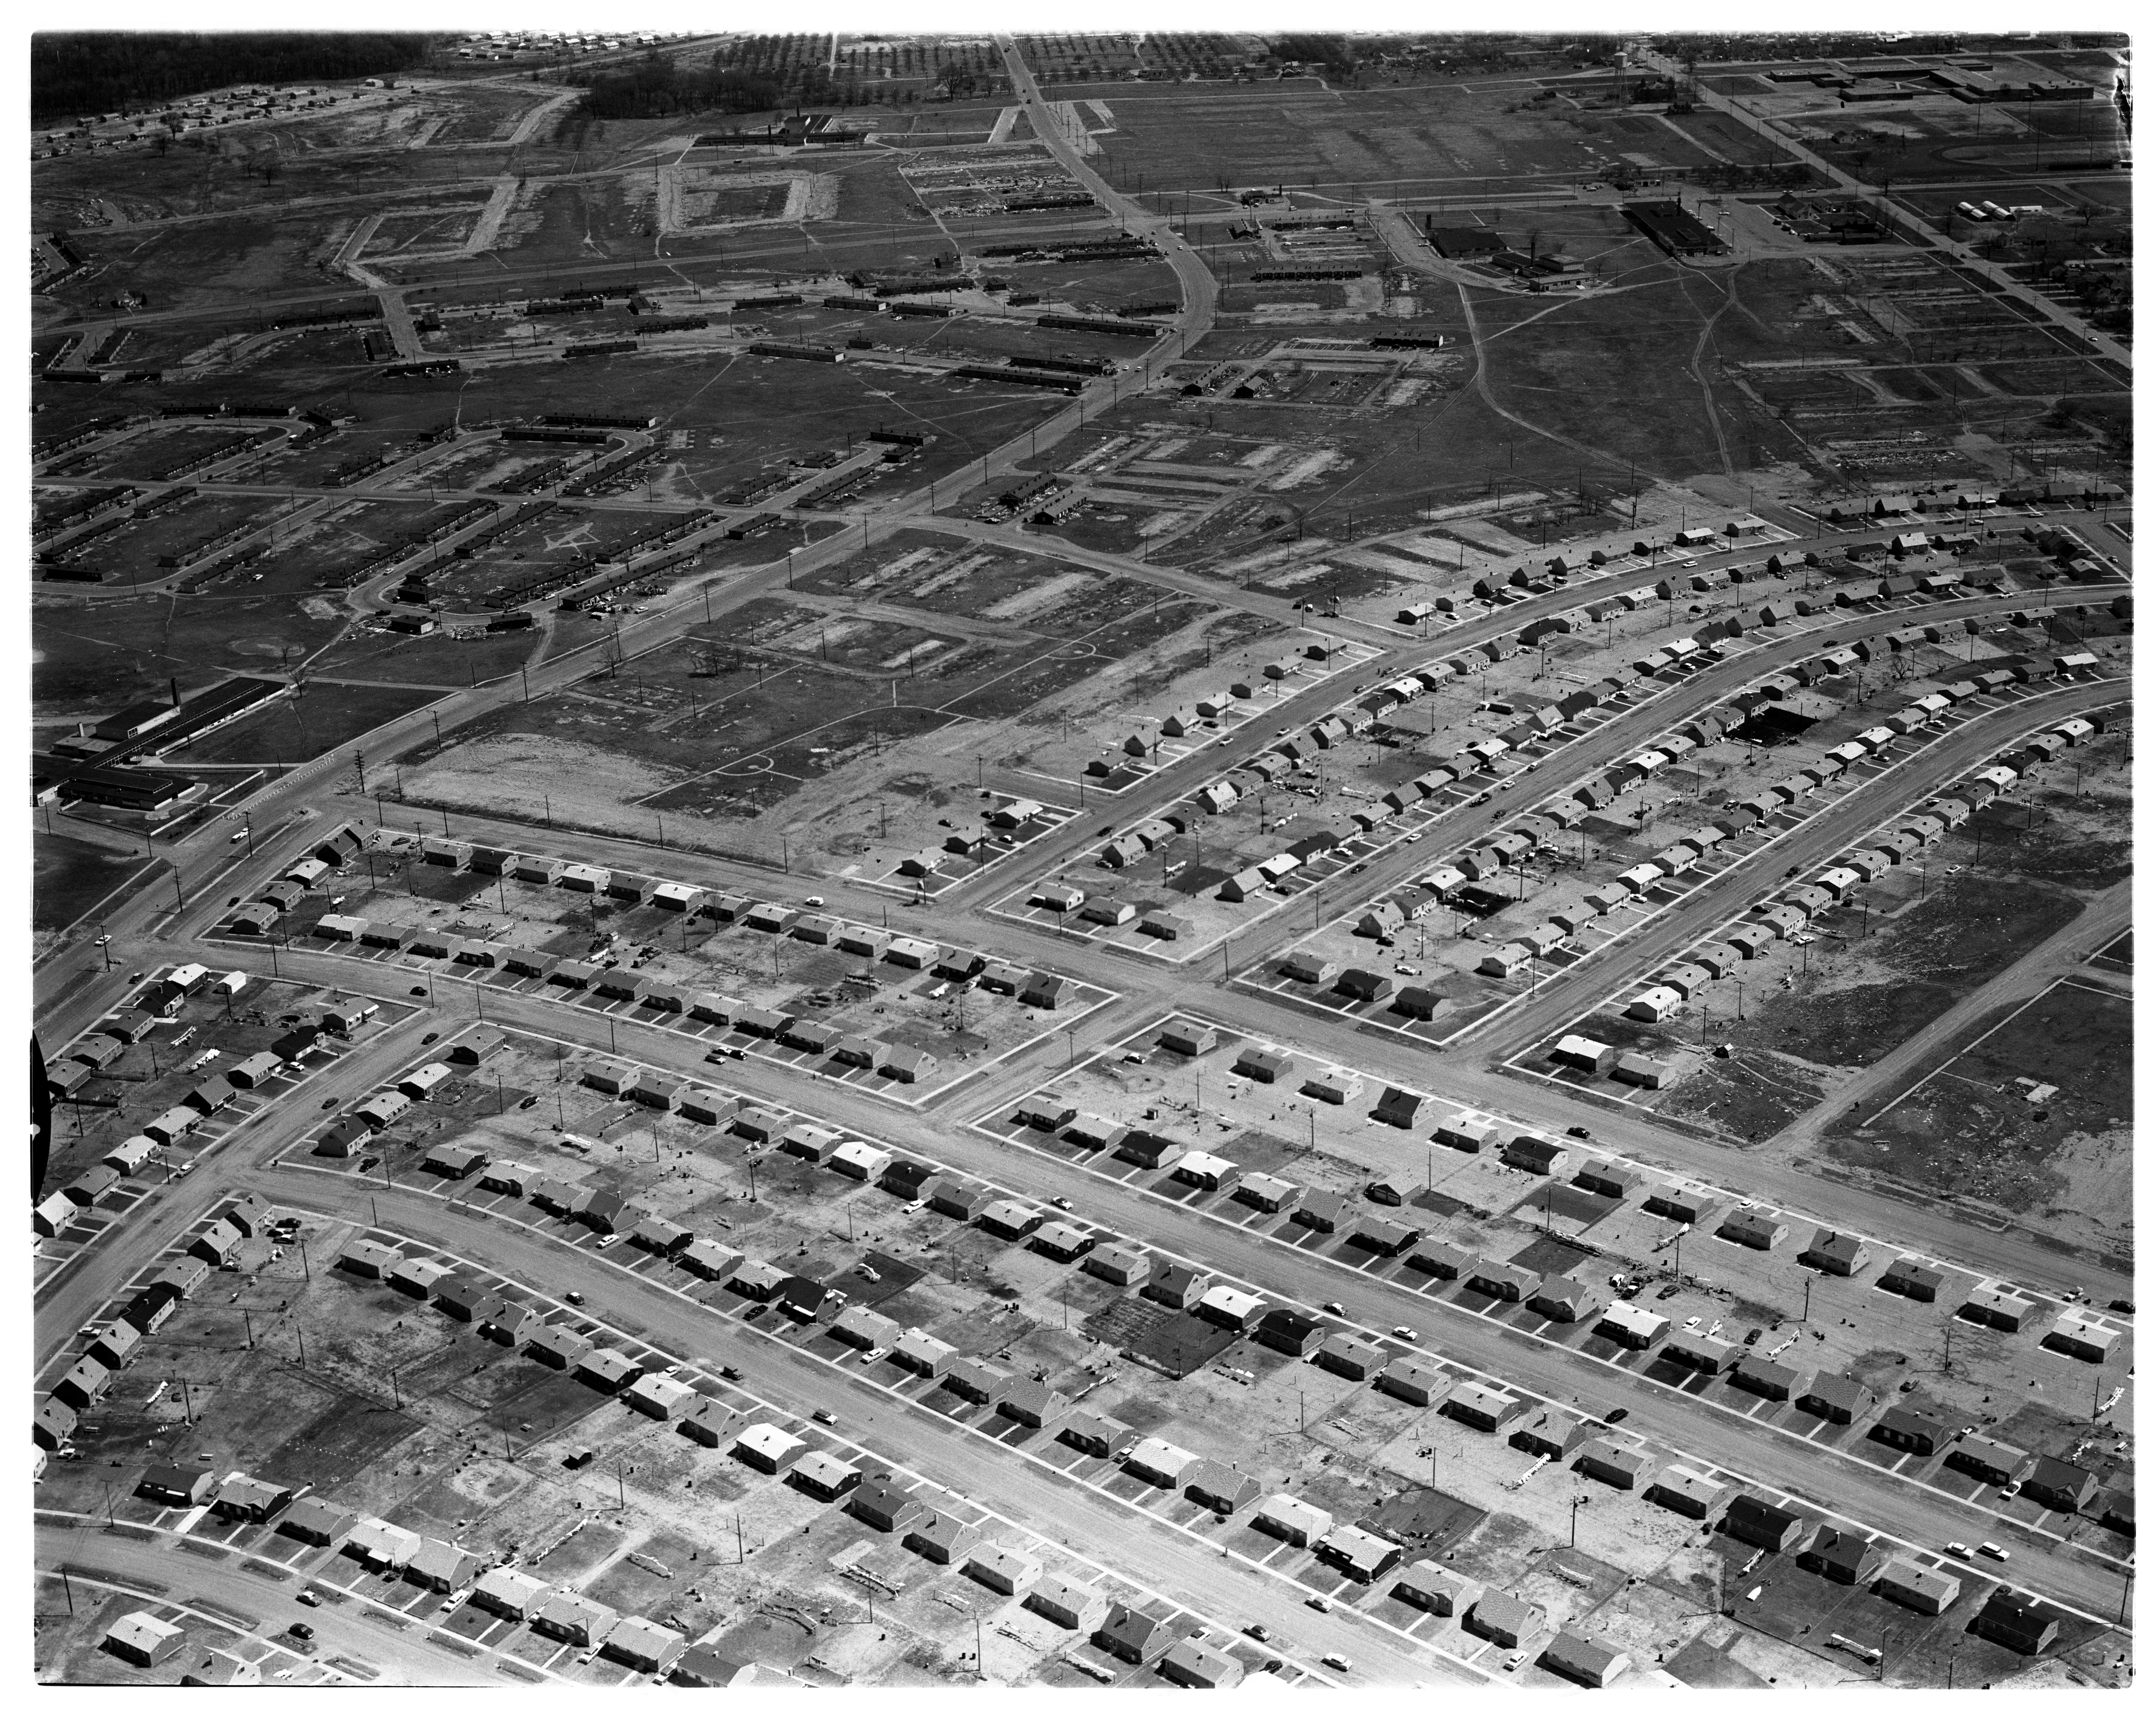 Aerial Photograph of Willow Village, Ypsilanti and Superior Townships, May 1959 image